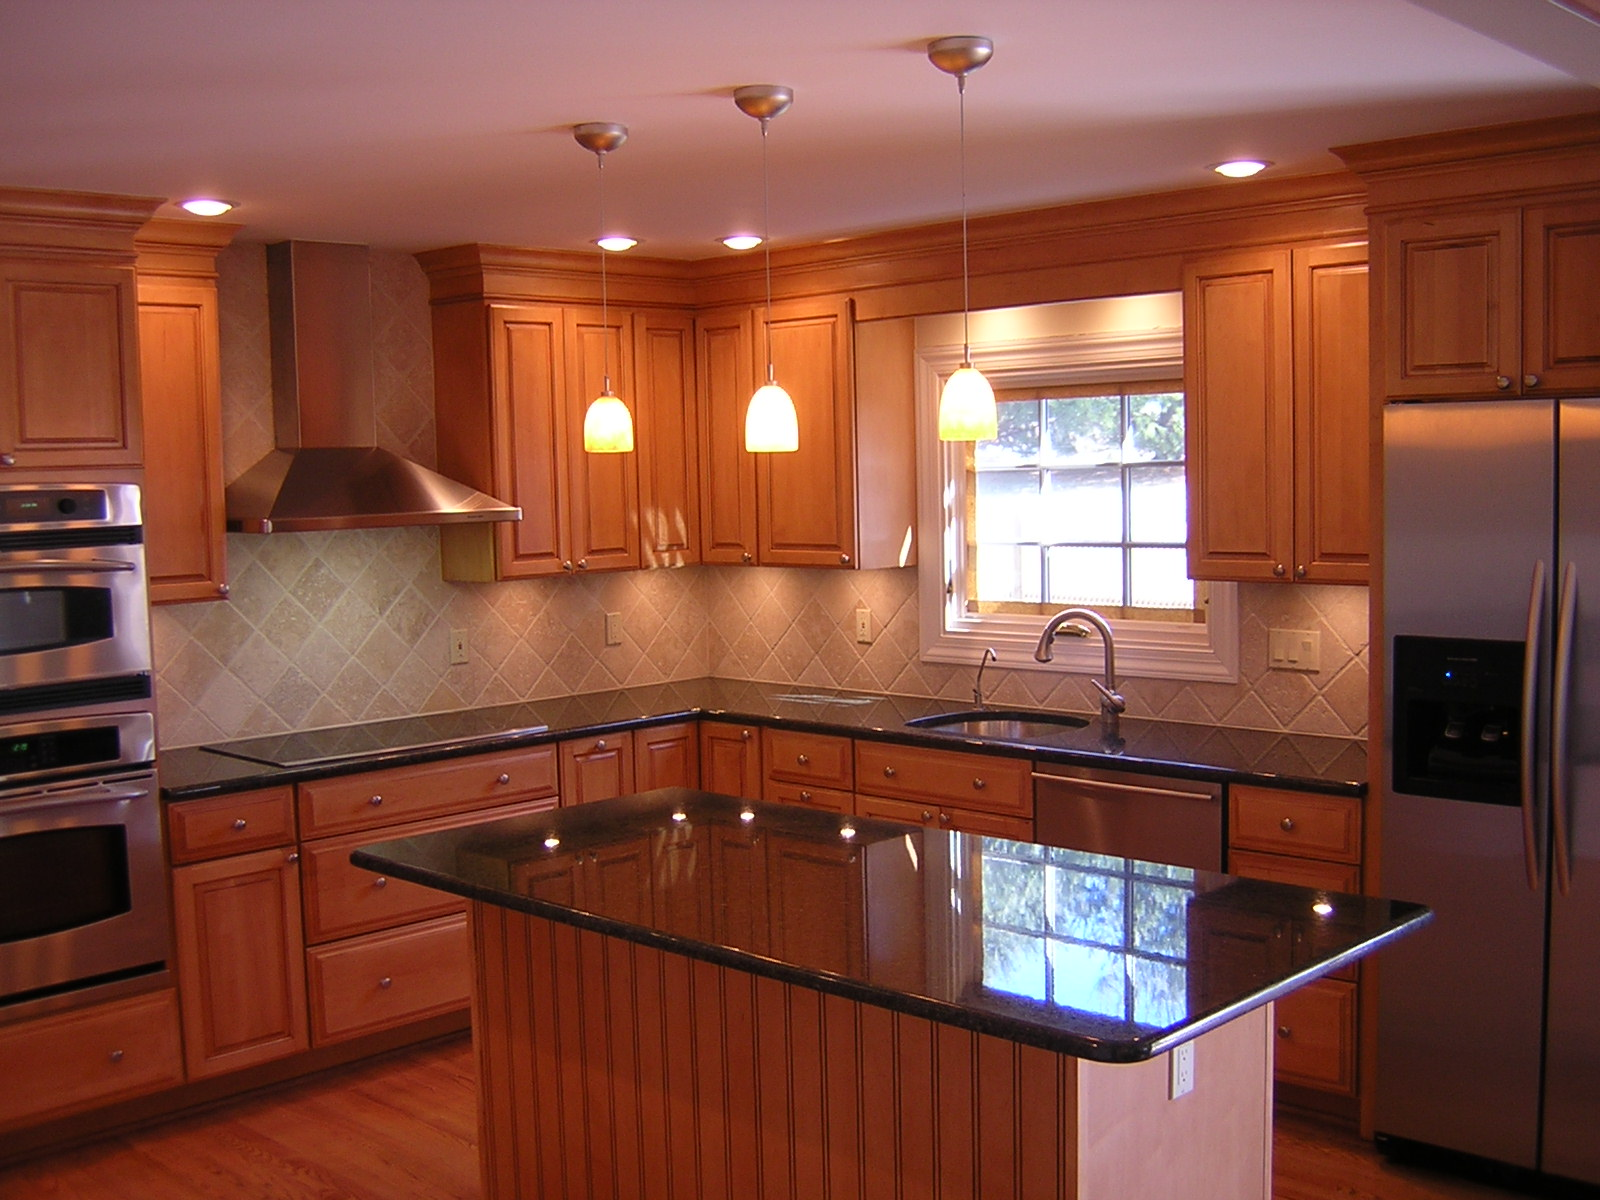 granite kitchen designs photo - 4